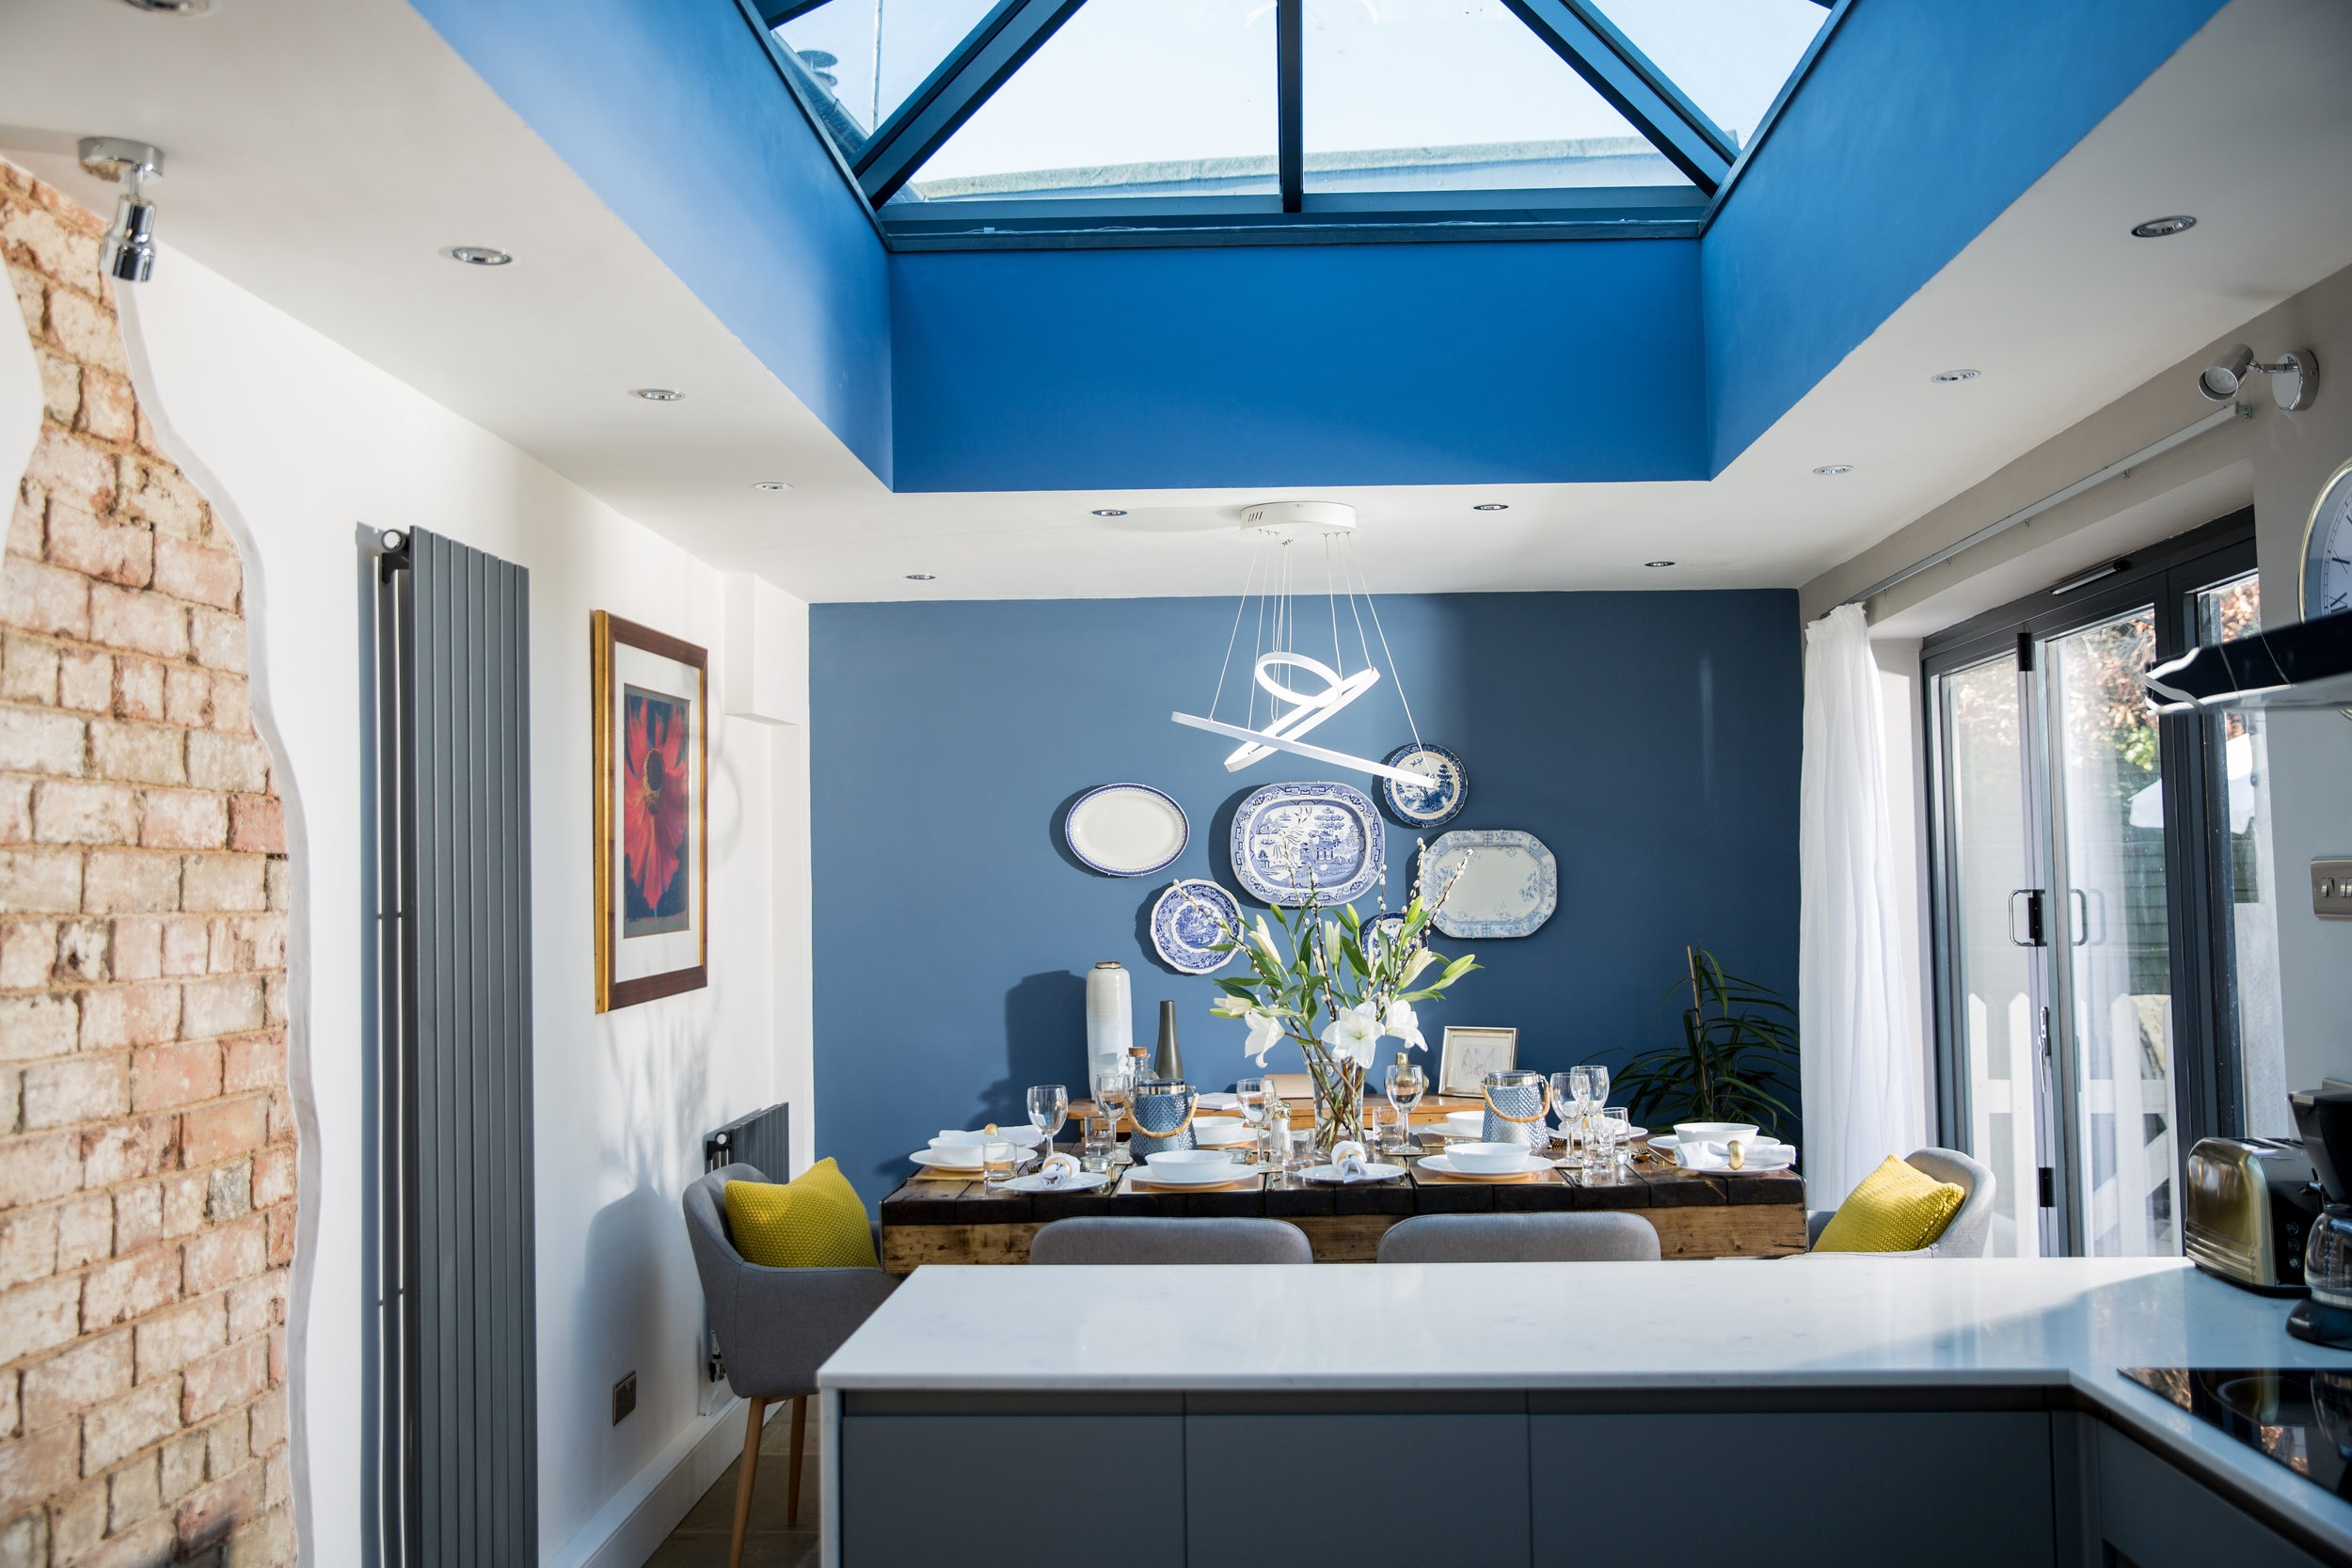 Kitchen Diner - The Cottage has a large stylish kitchen diner seating 6 and has everything you need to cook a grand meal or hearty breakfast.